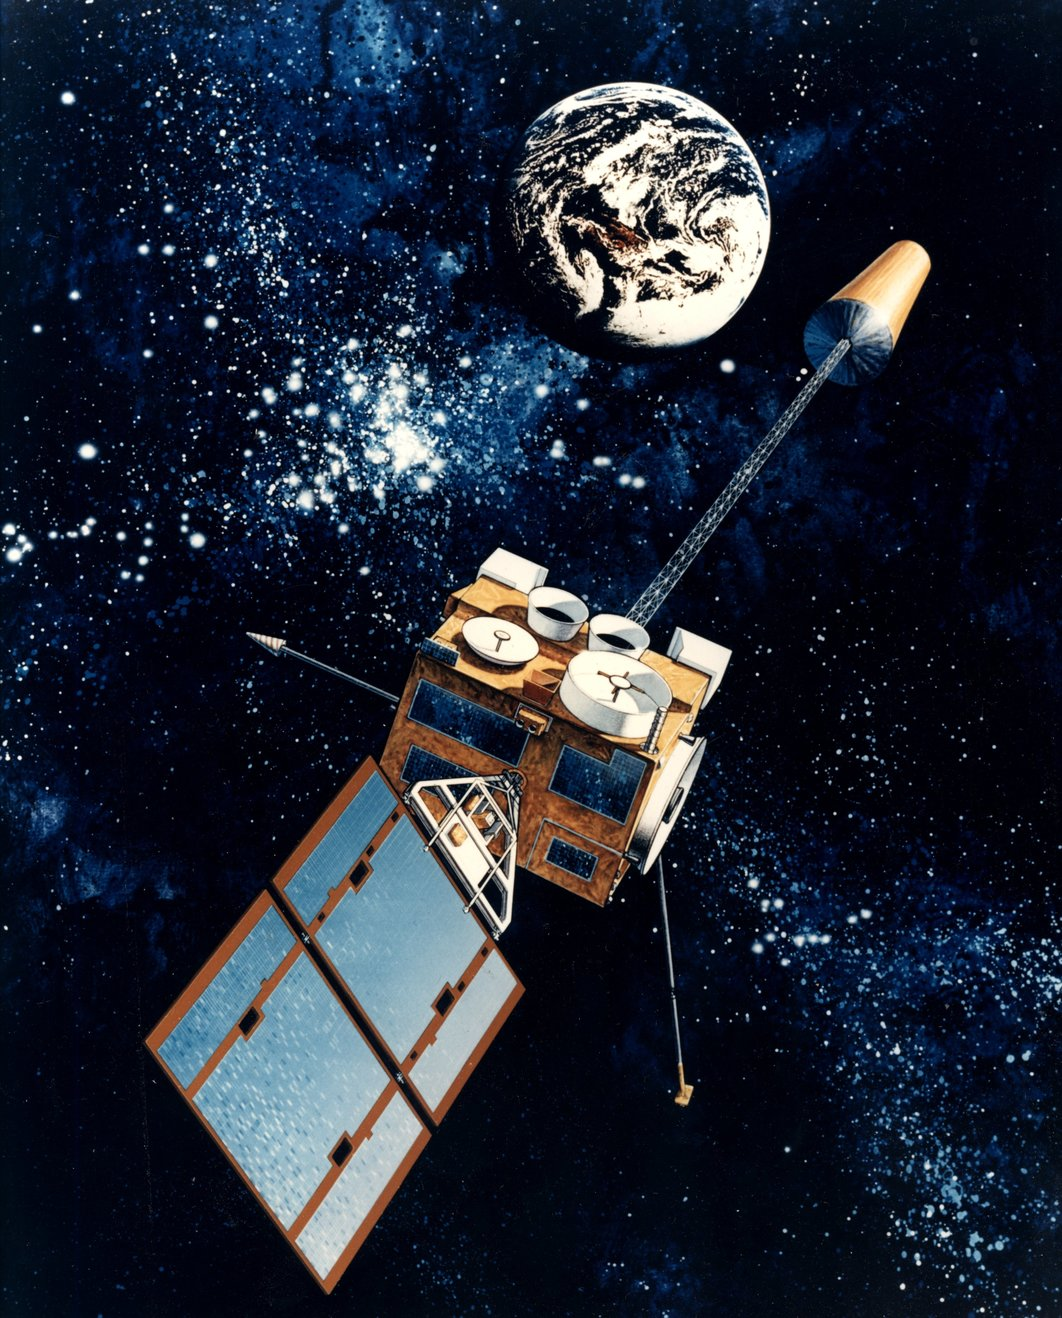 GOES satellite observing Earth – Image Credit:    NOAA Photo Library